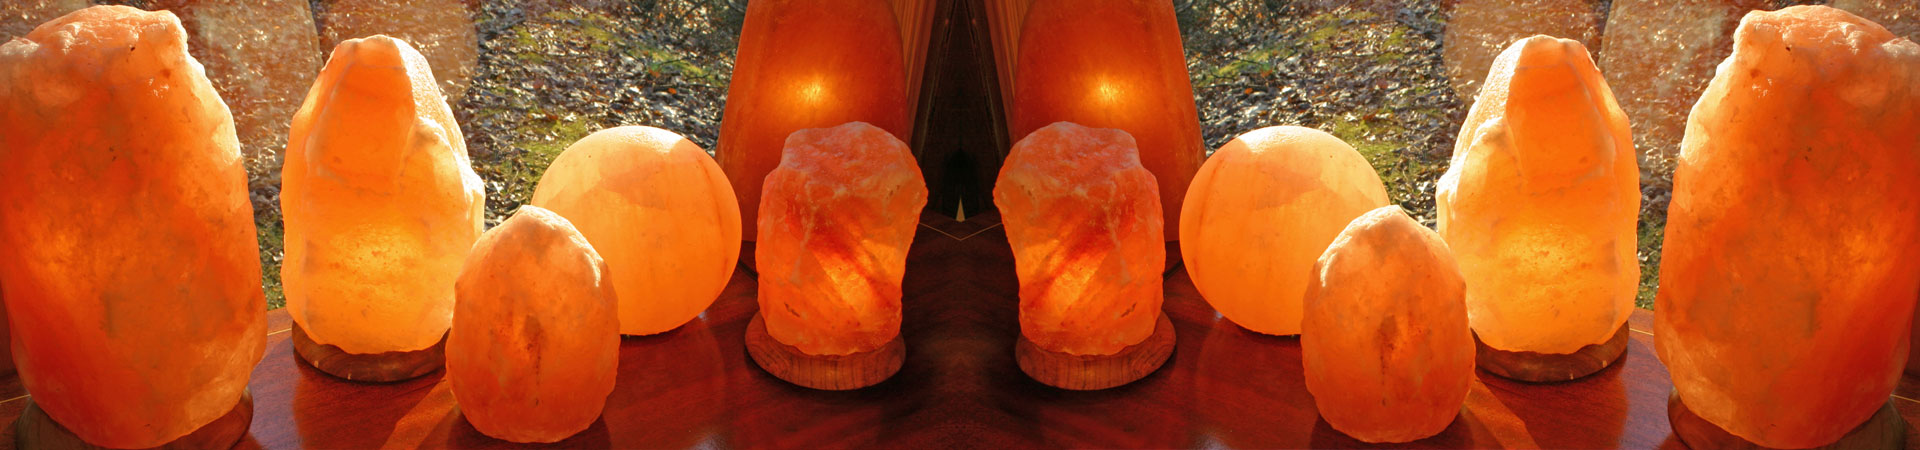 Himalayan Salt Lamps Maleny : Himalayan Natural Rock Salt Lamps Exporters Pakistan Salt